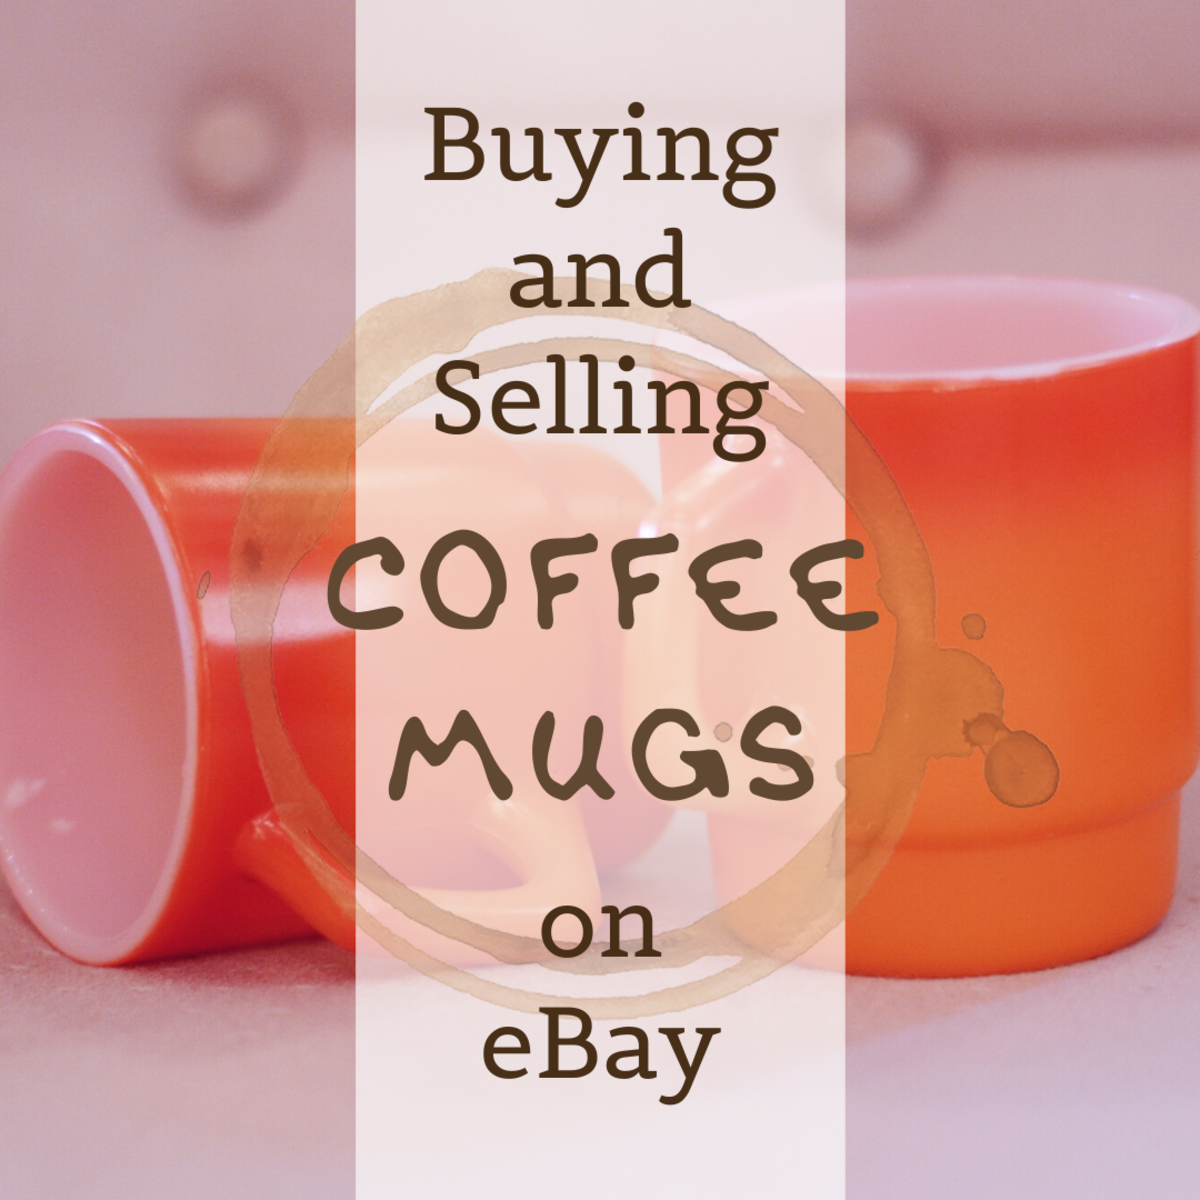 Learn the ins and outs of creating an eBay business focused on mugs.